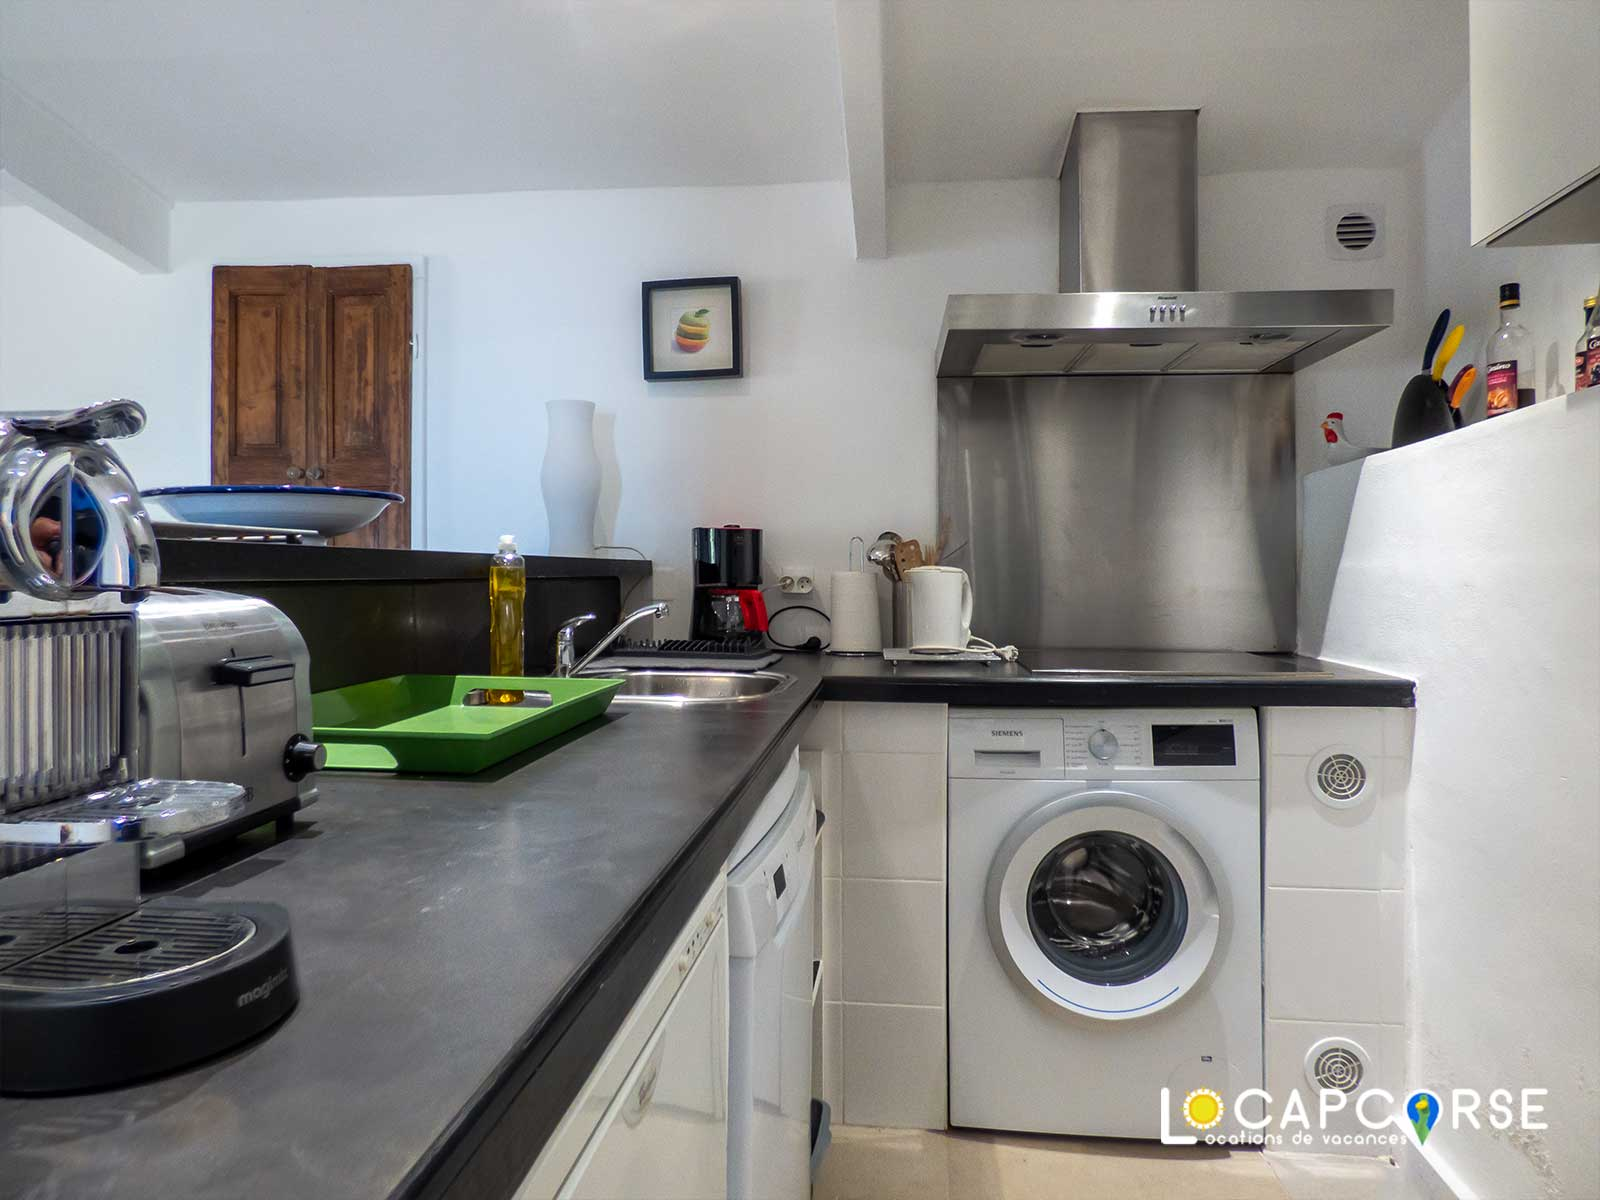 Locations Cap Corse - The kitchen is equipped and functional